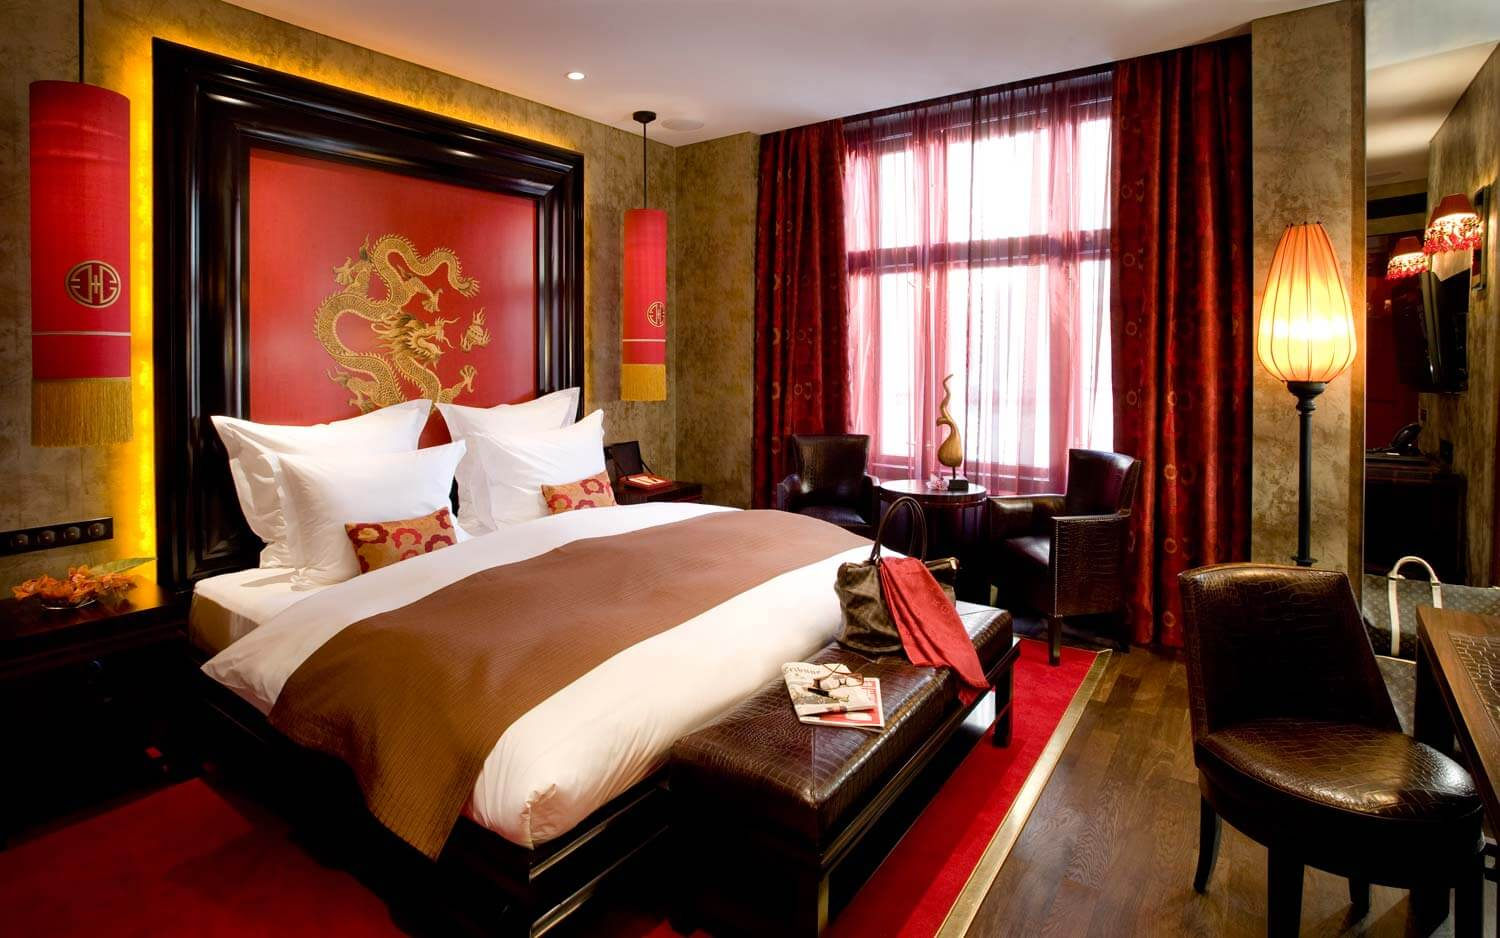 Buddha bar hotel in prague luxury 5 star hotel prague for Designer hotel prague